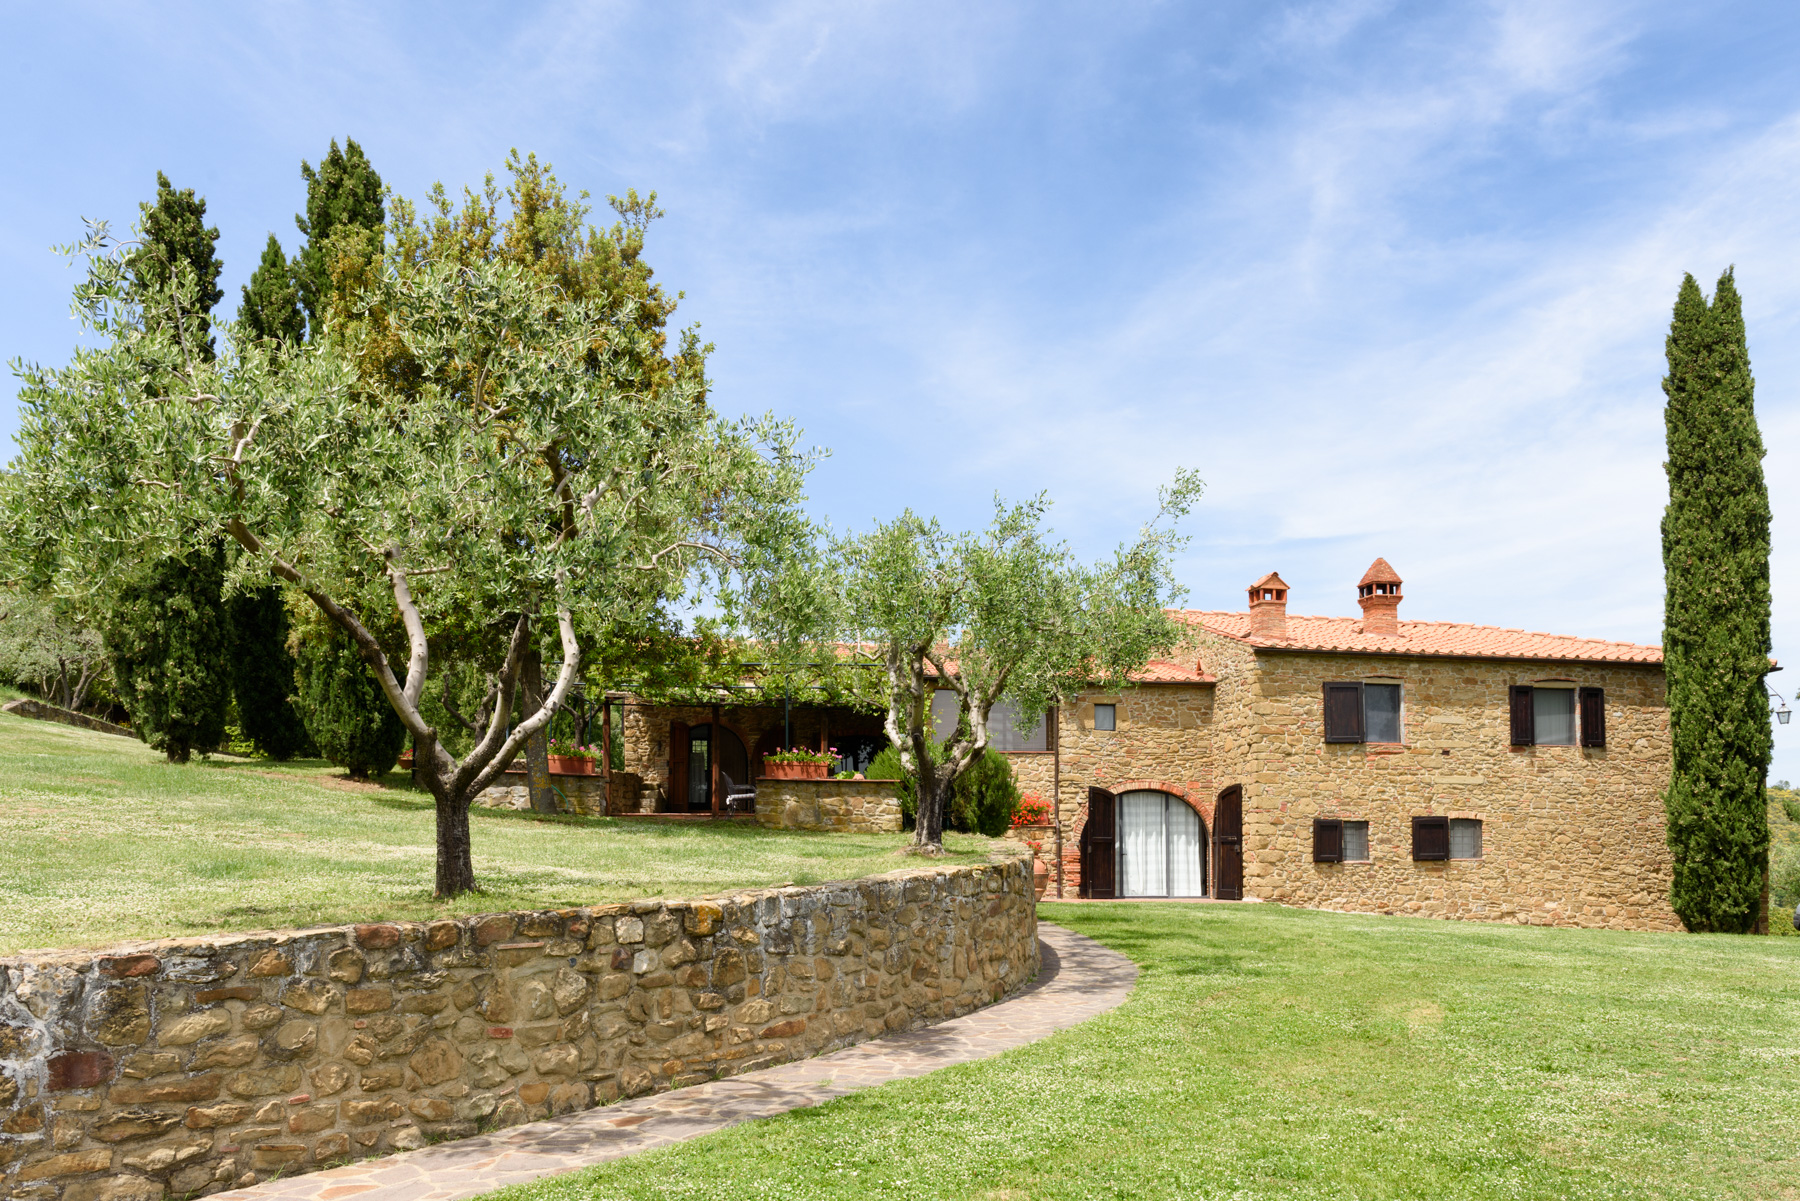 Single Family Home for Sale at Country retreat in Chianti Aretino Pergine Valdarno, Arezzo Italy